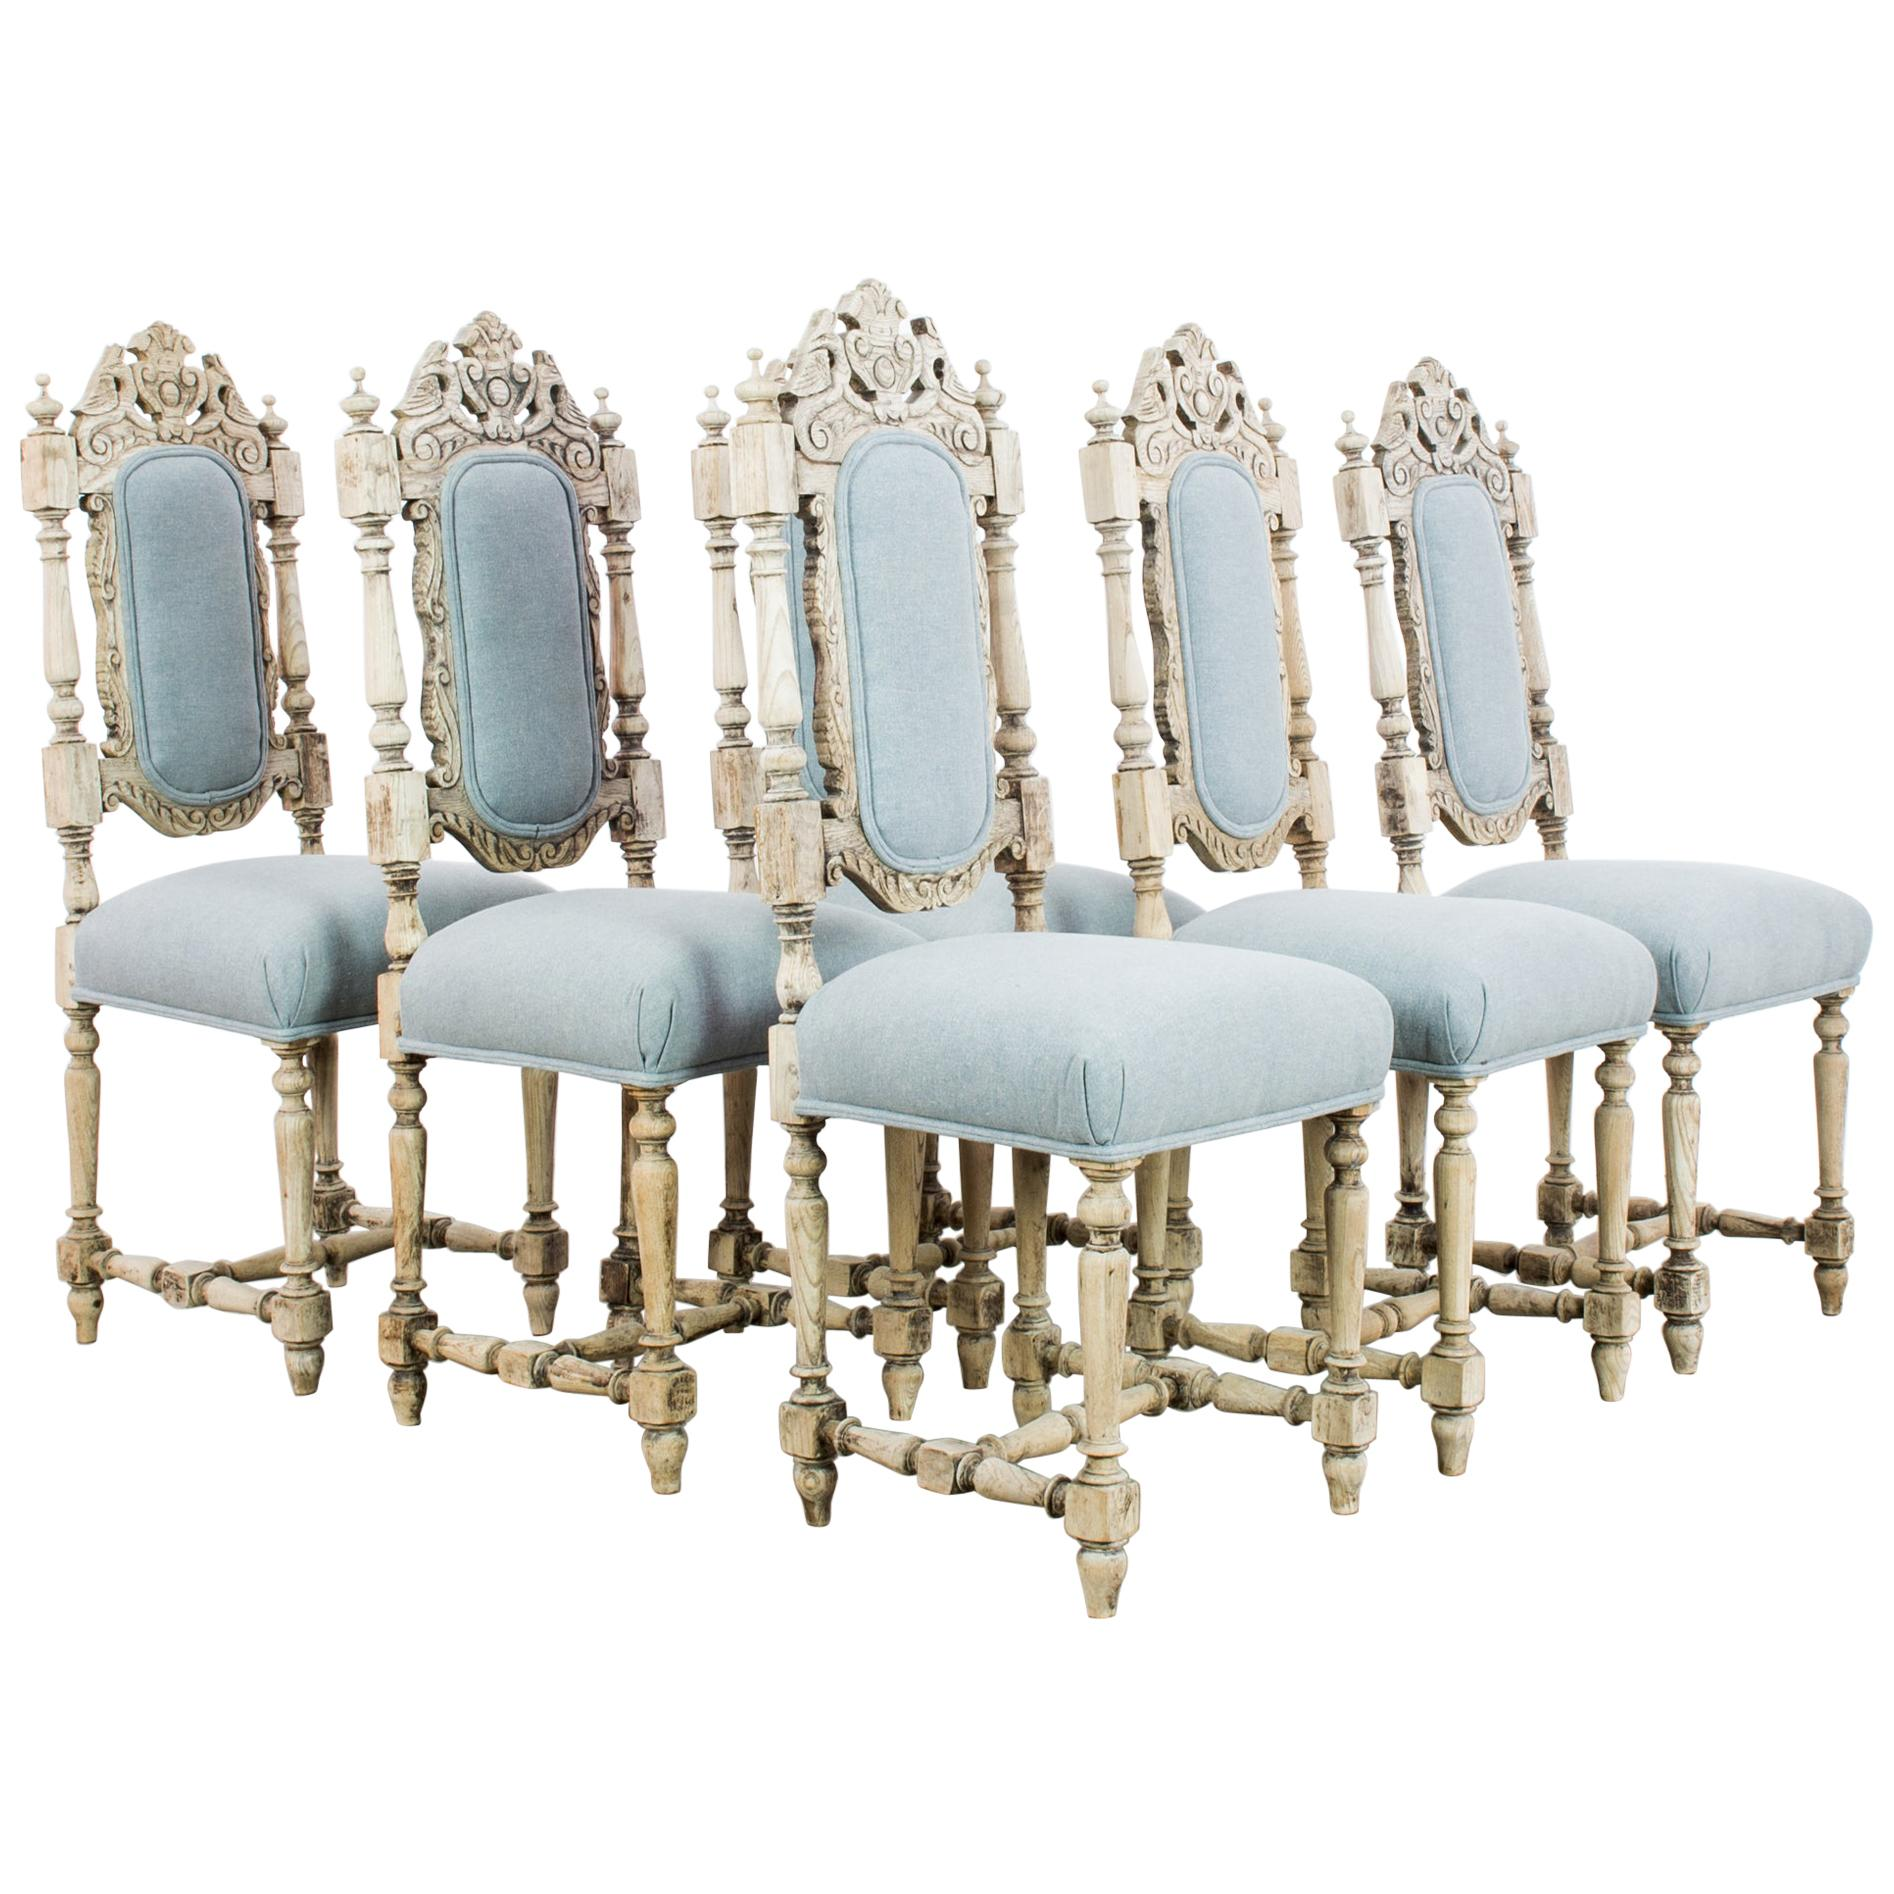 Antique French Provincial Dining Chairs, Set of Six